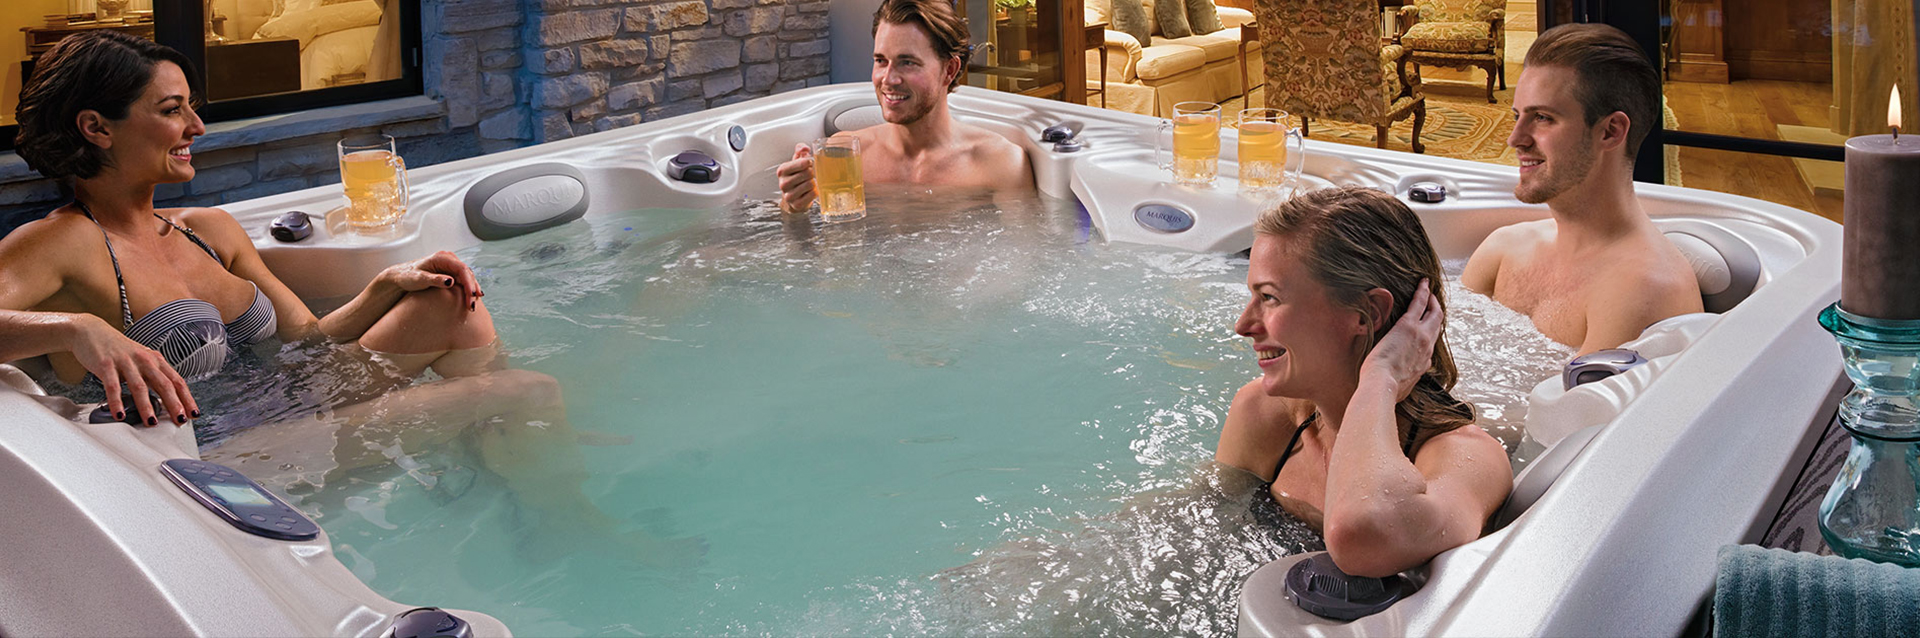 The euphoria hot tub in New Jersey